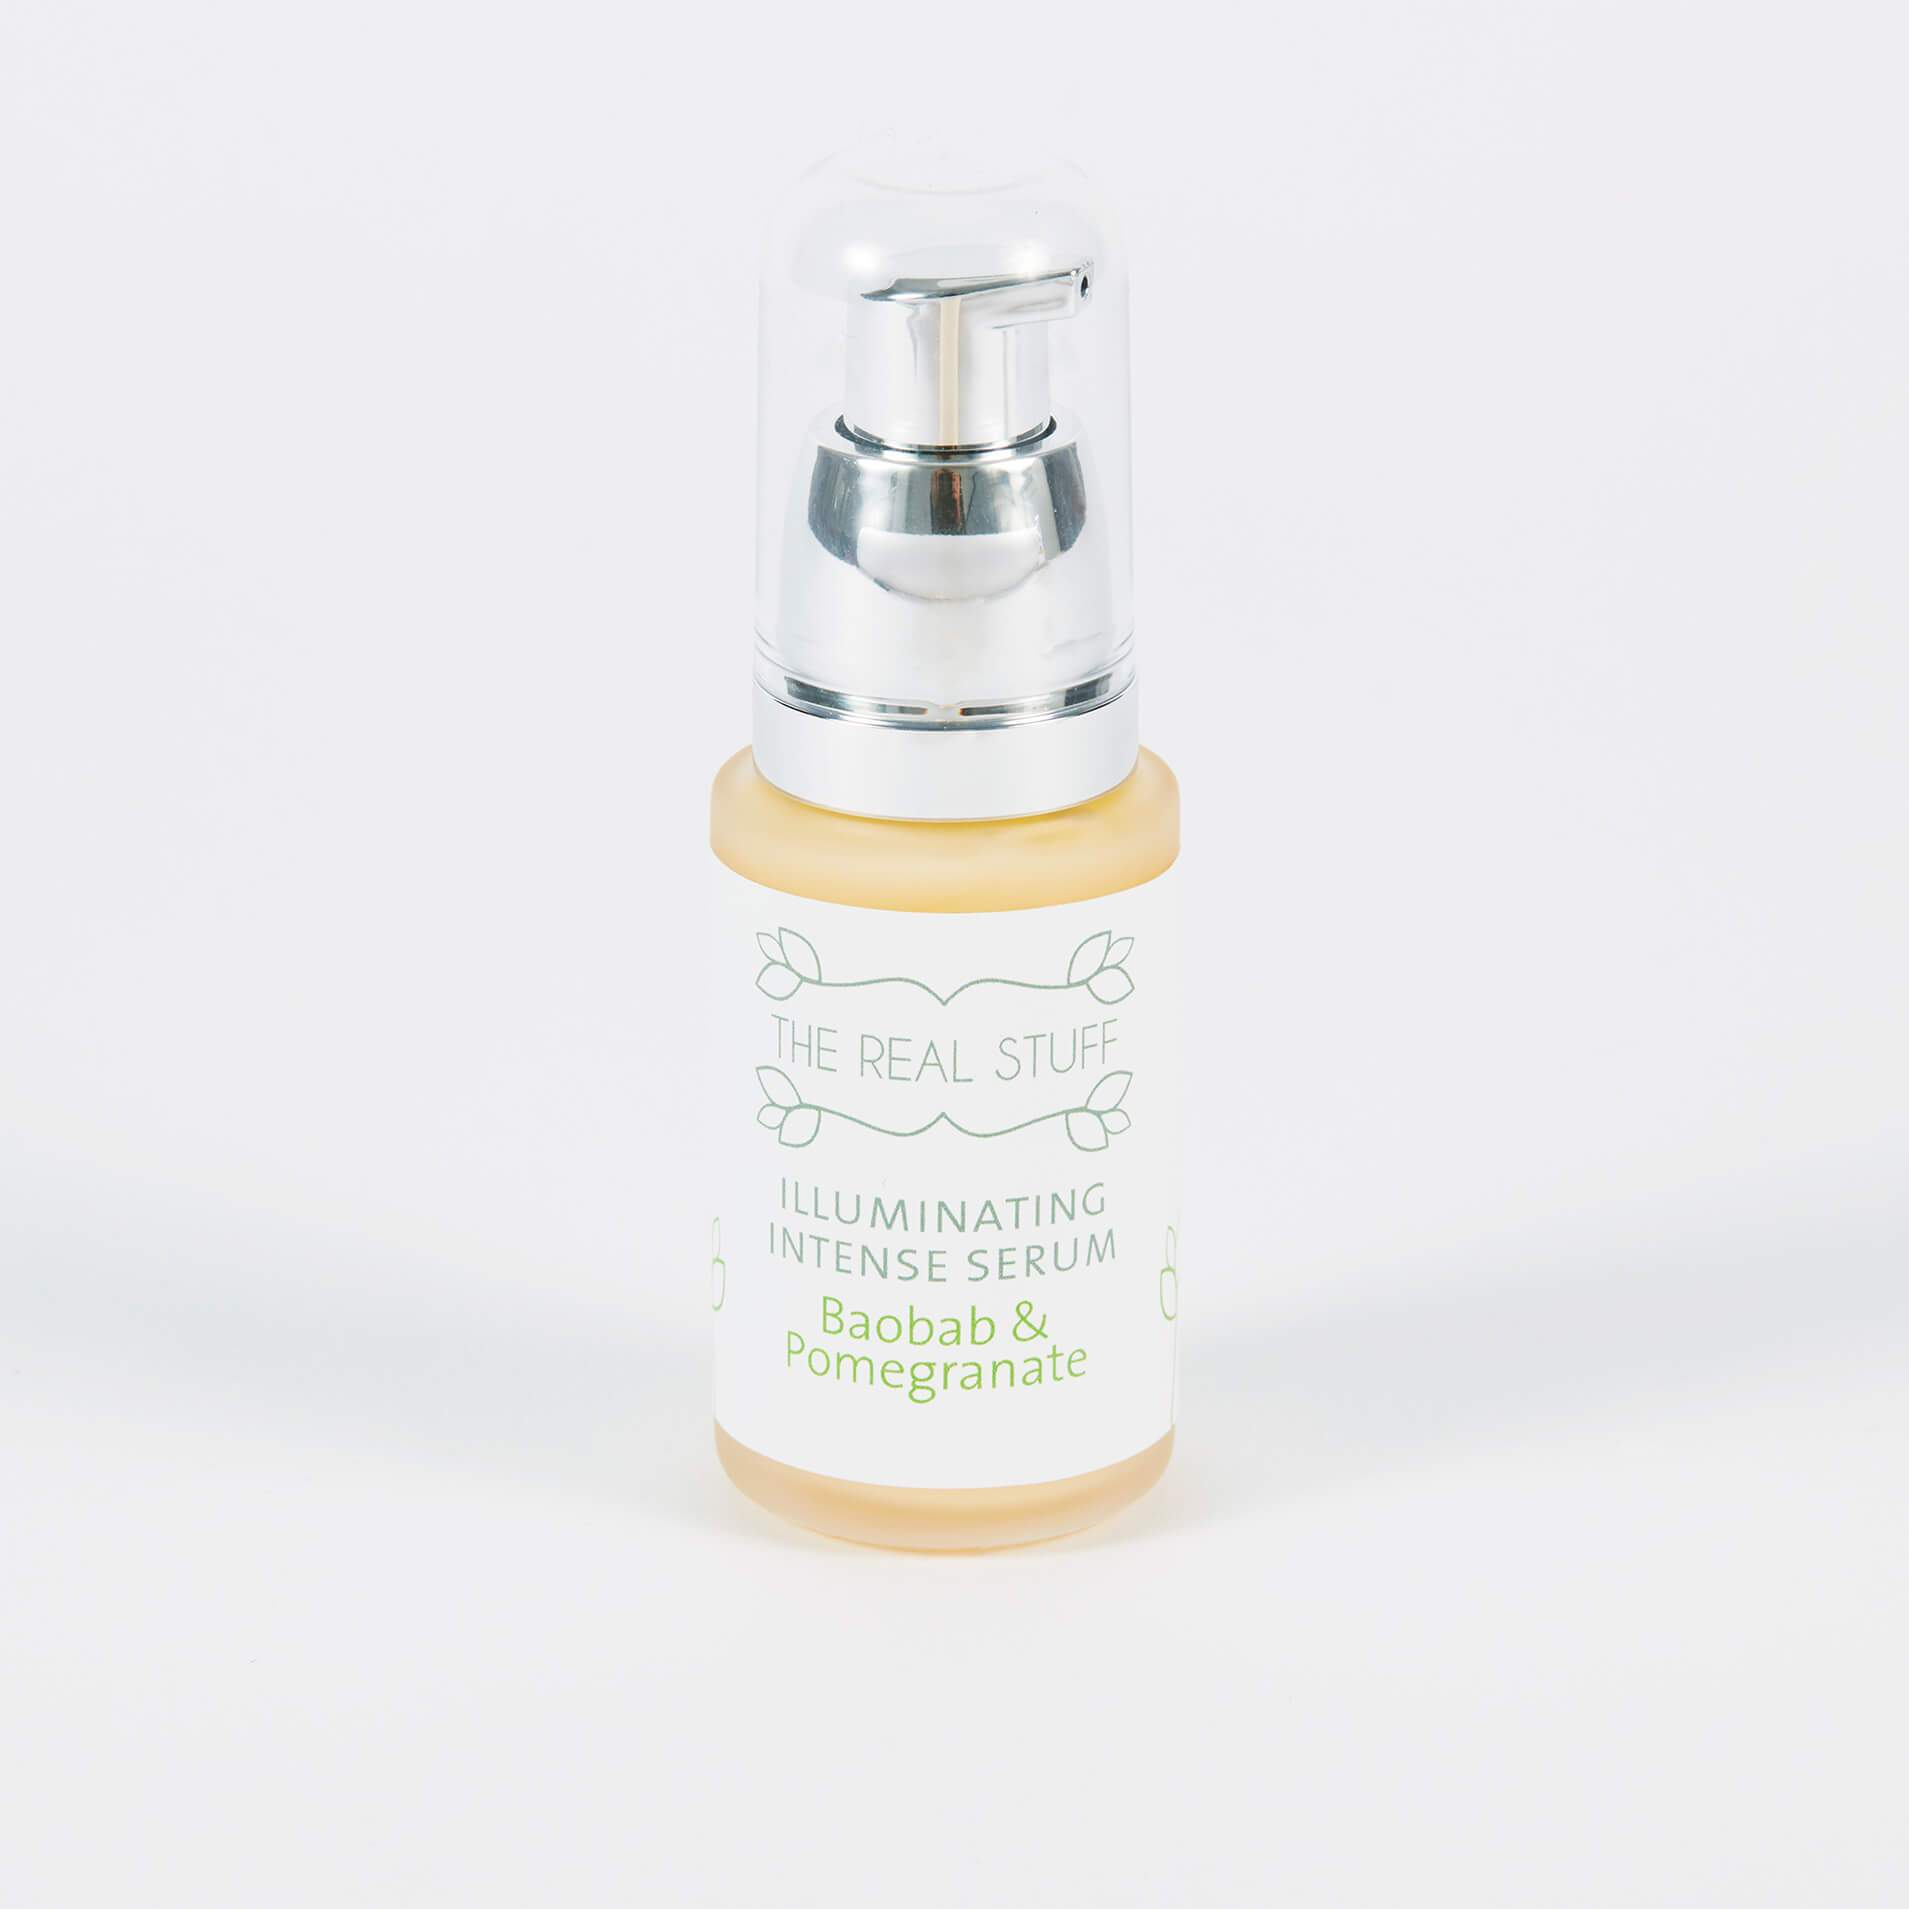 Illuminating Intense Serum Serum The Real Stuff Organic Skincare - Genuine Selection